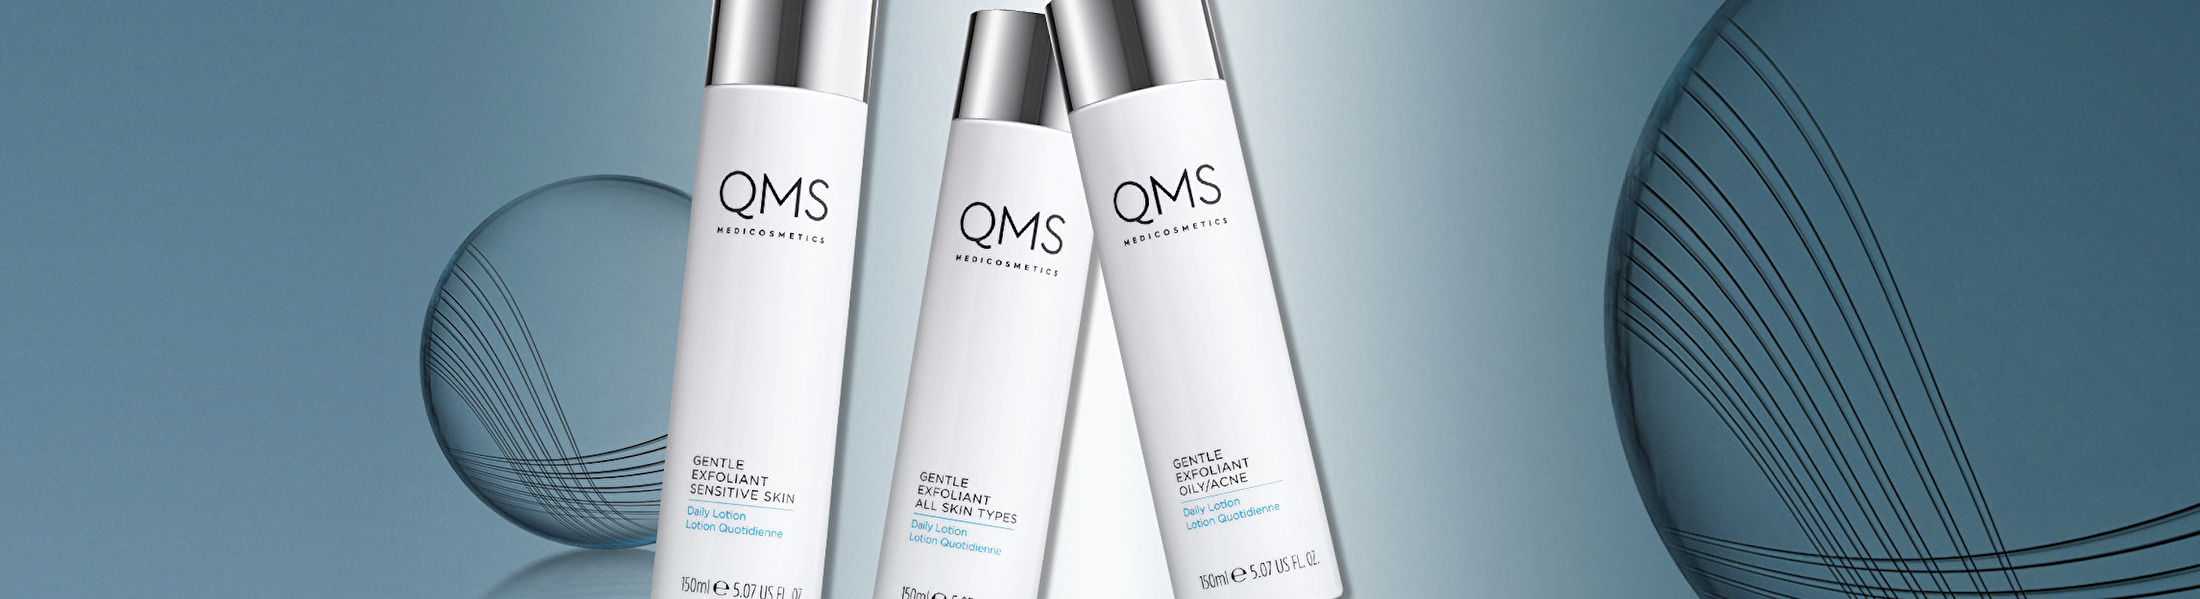 Gentle Exfoliant Daily Lotions